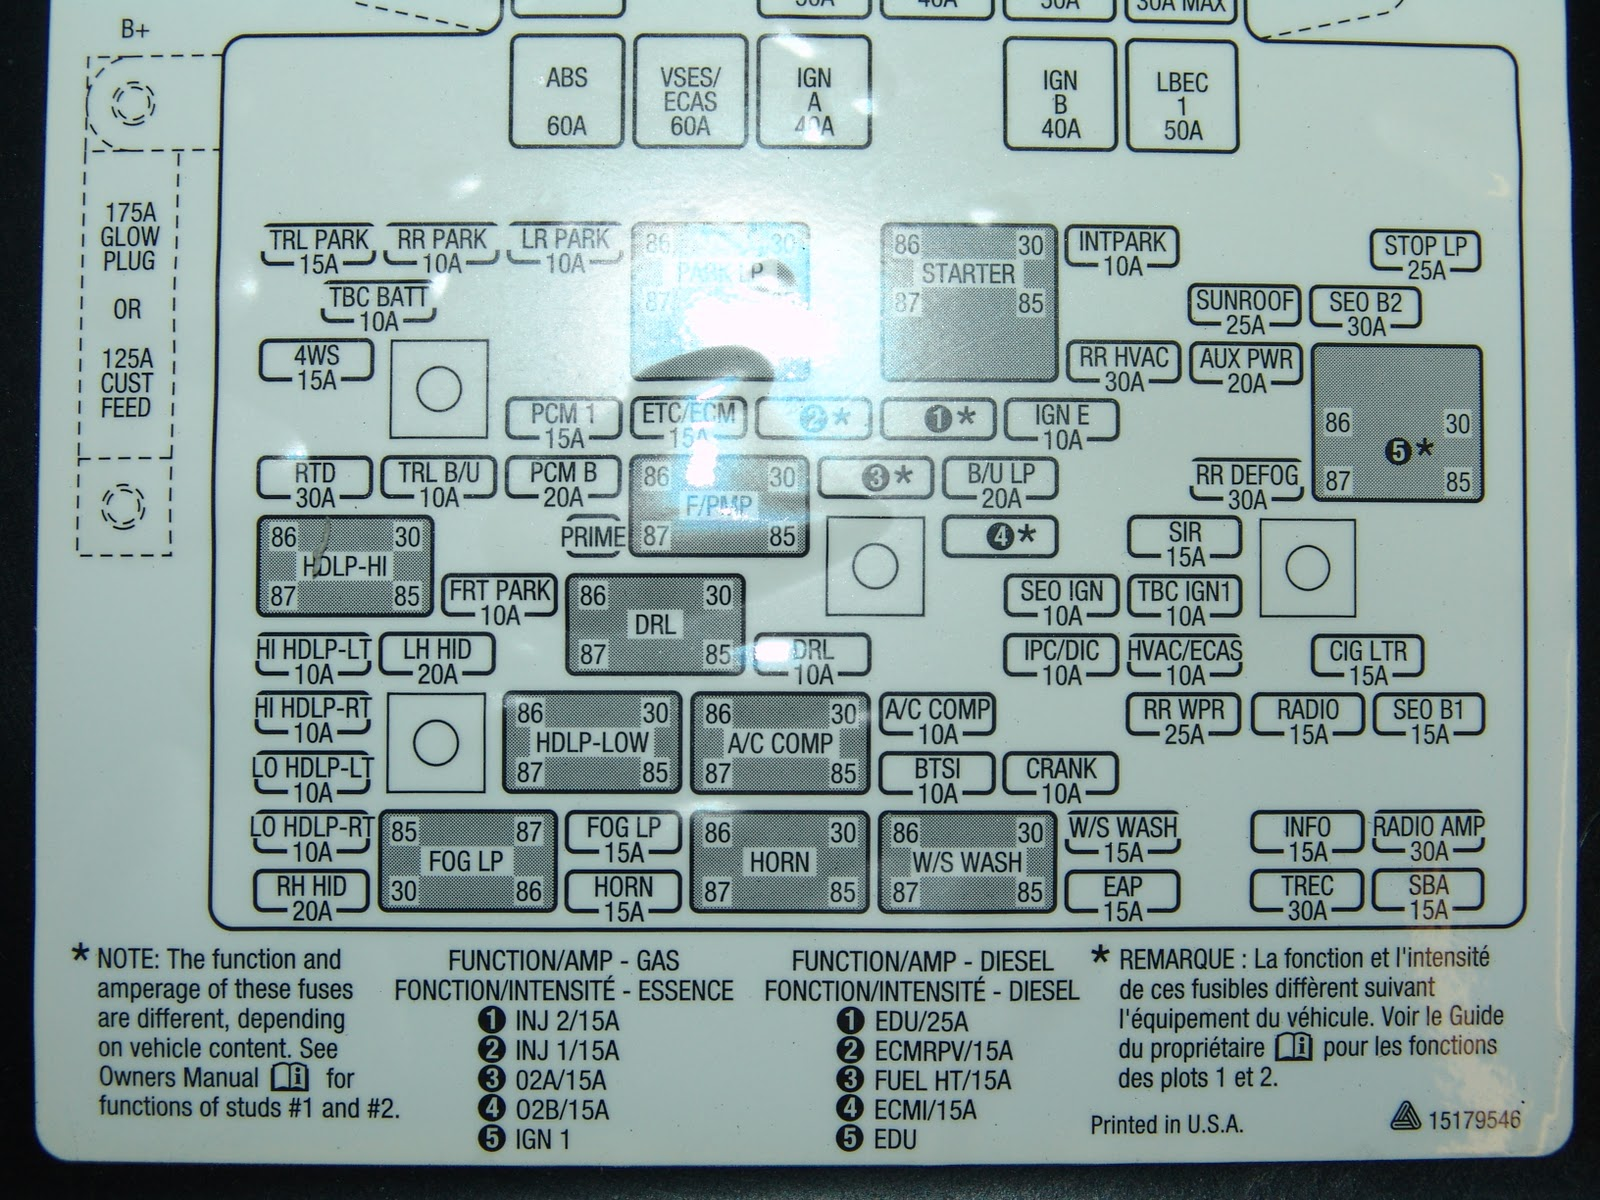 2005 Kenworth Fuse Panel Diagram Guide And Troubleshooting Of Wiring Schematics Diagrams Box Third Level Rh 9 20 Jacobwinterstein Com W900